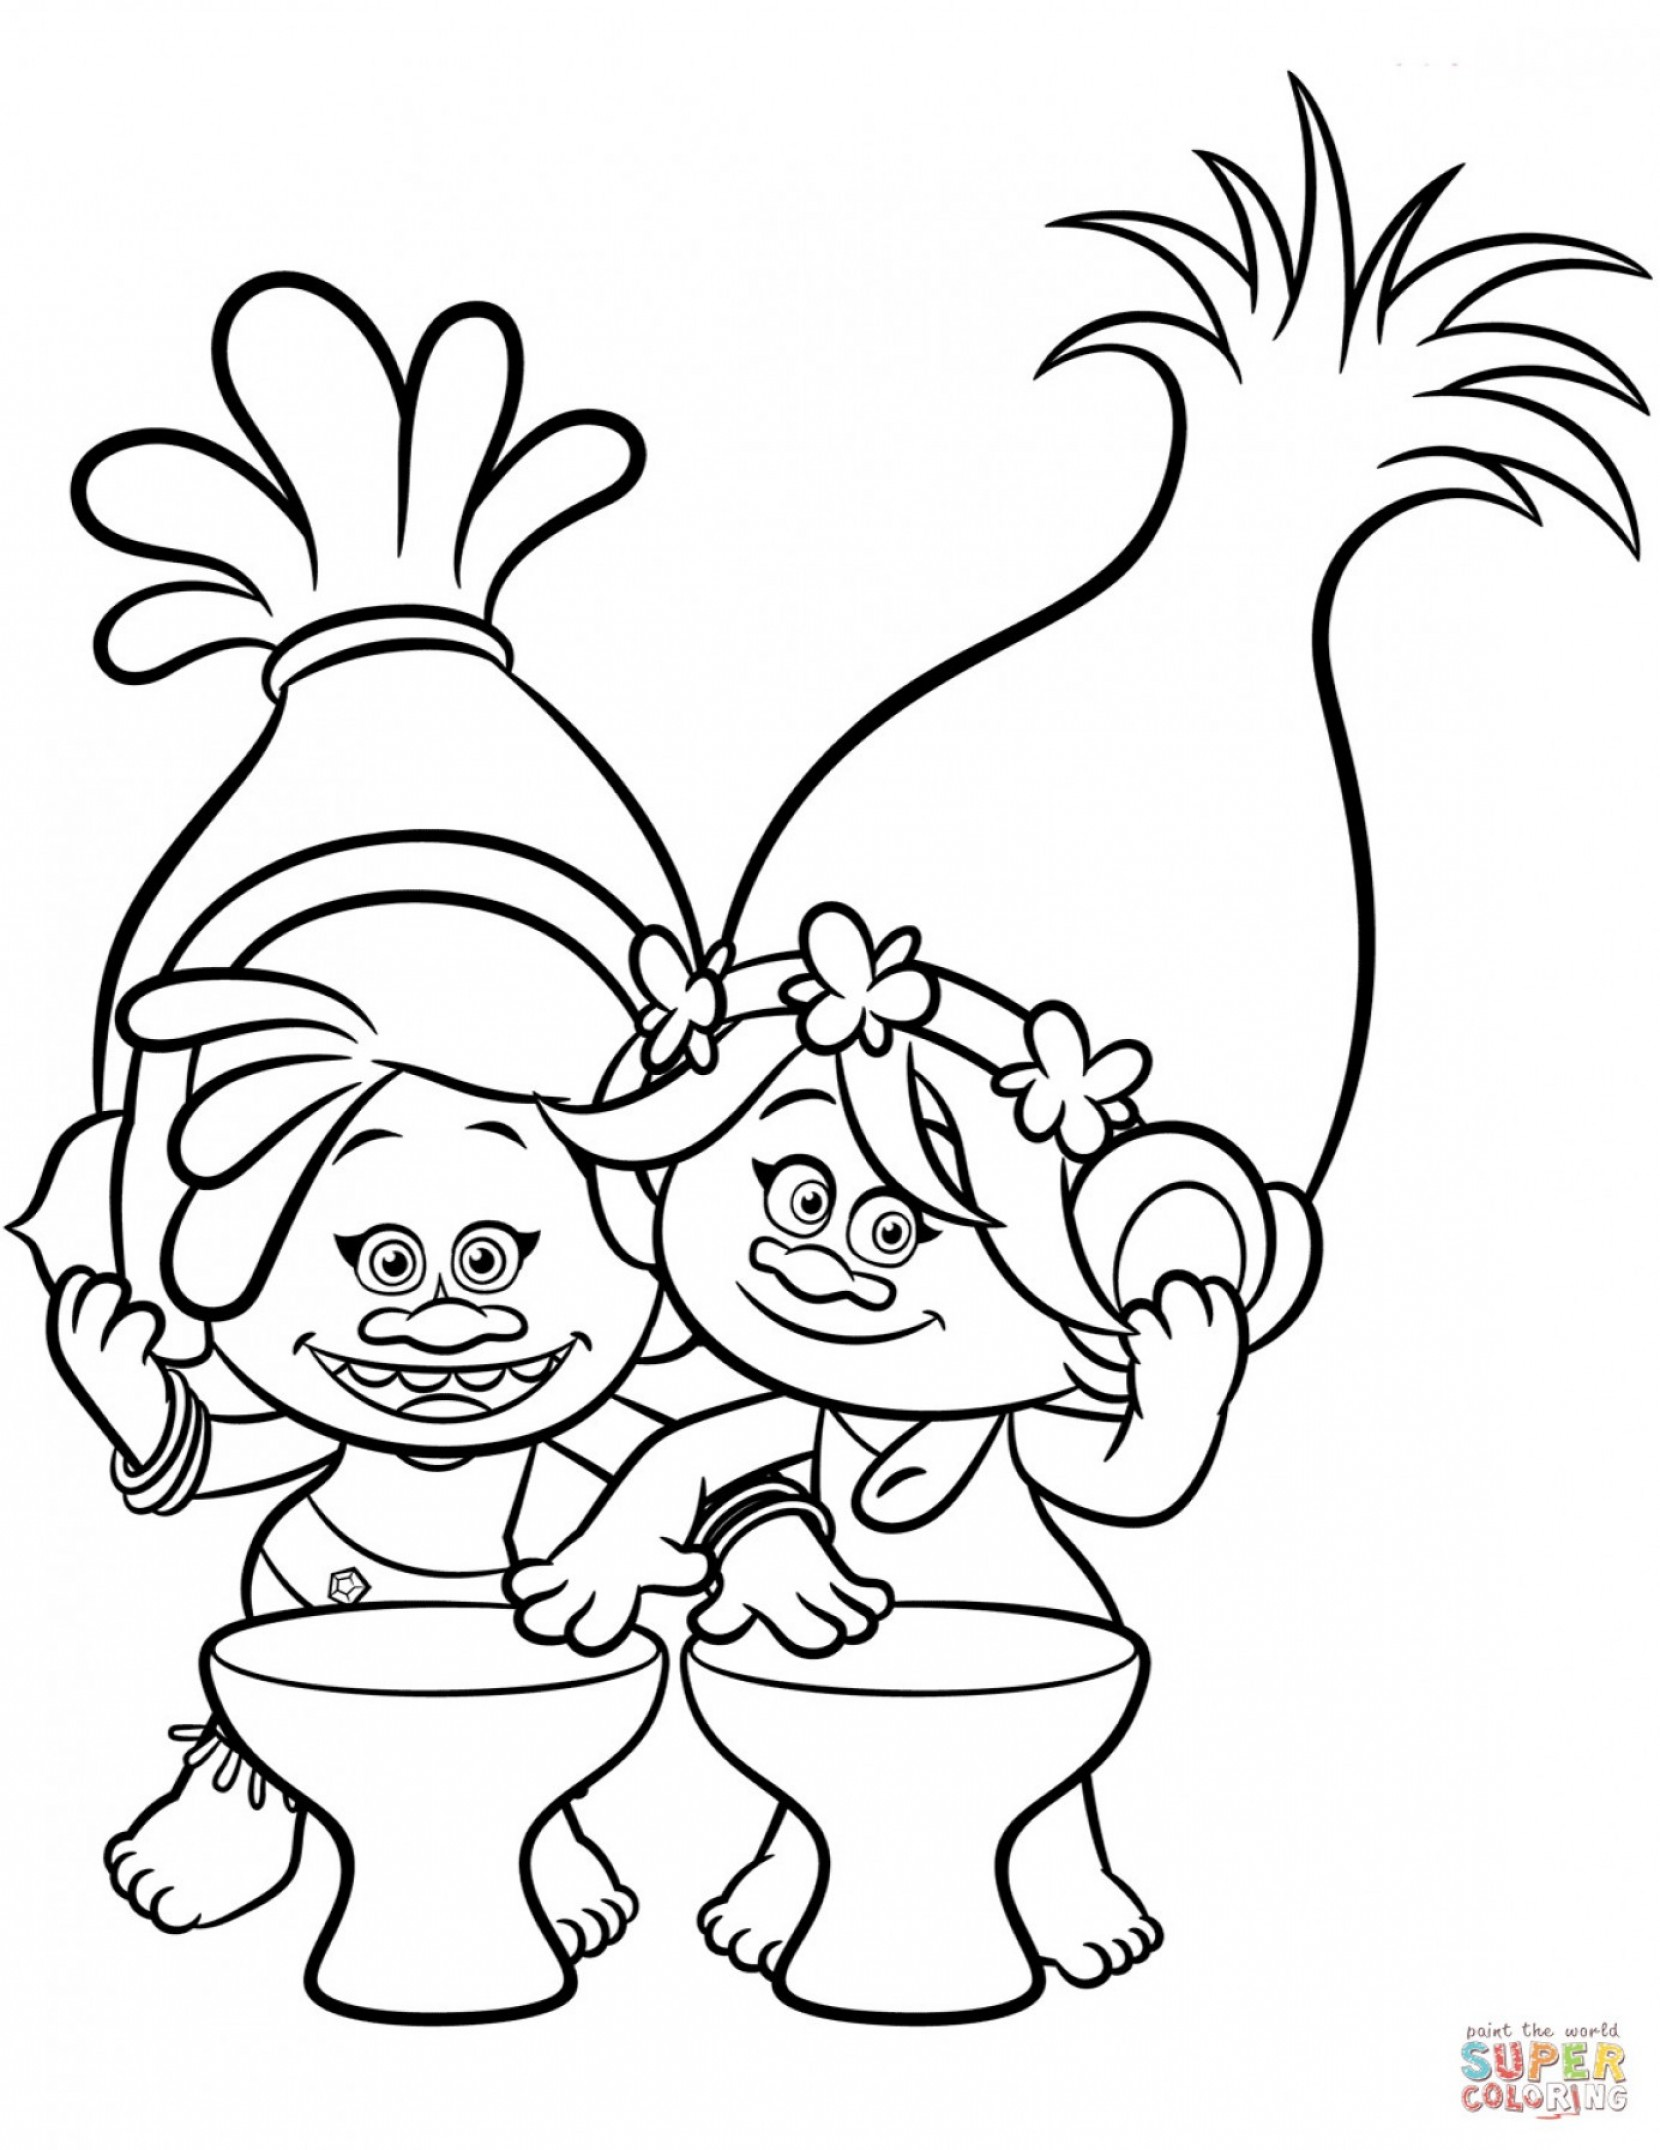 Trolls Poppy And Branch Vector Art: Dj Suki And Poppy From Trolls Coloring Page Picturesque Troll